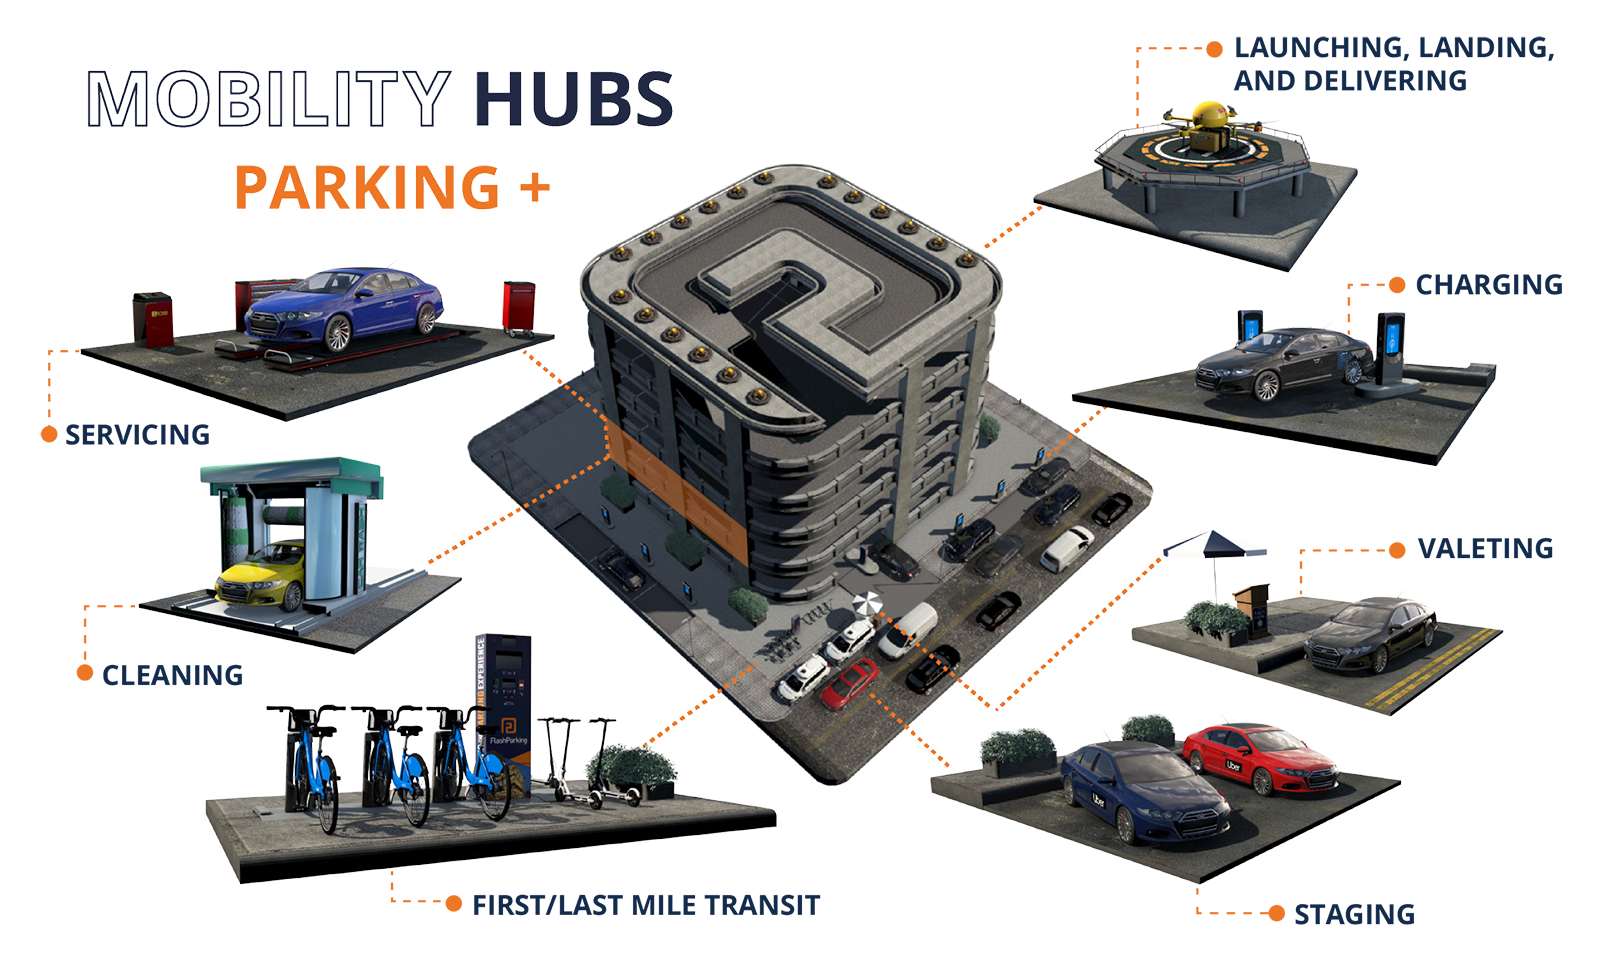 Flash Parking Mobility Hub